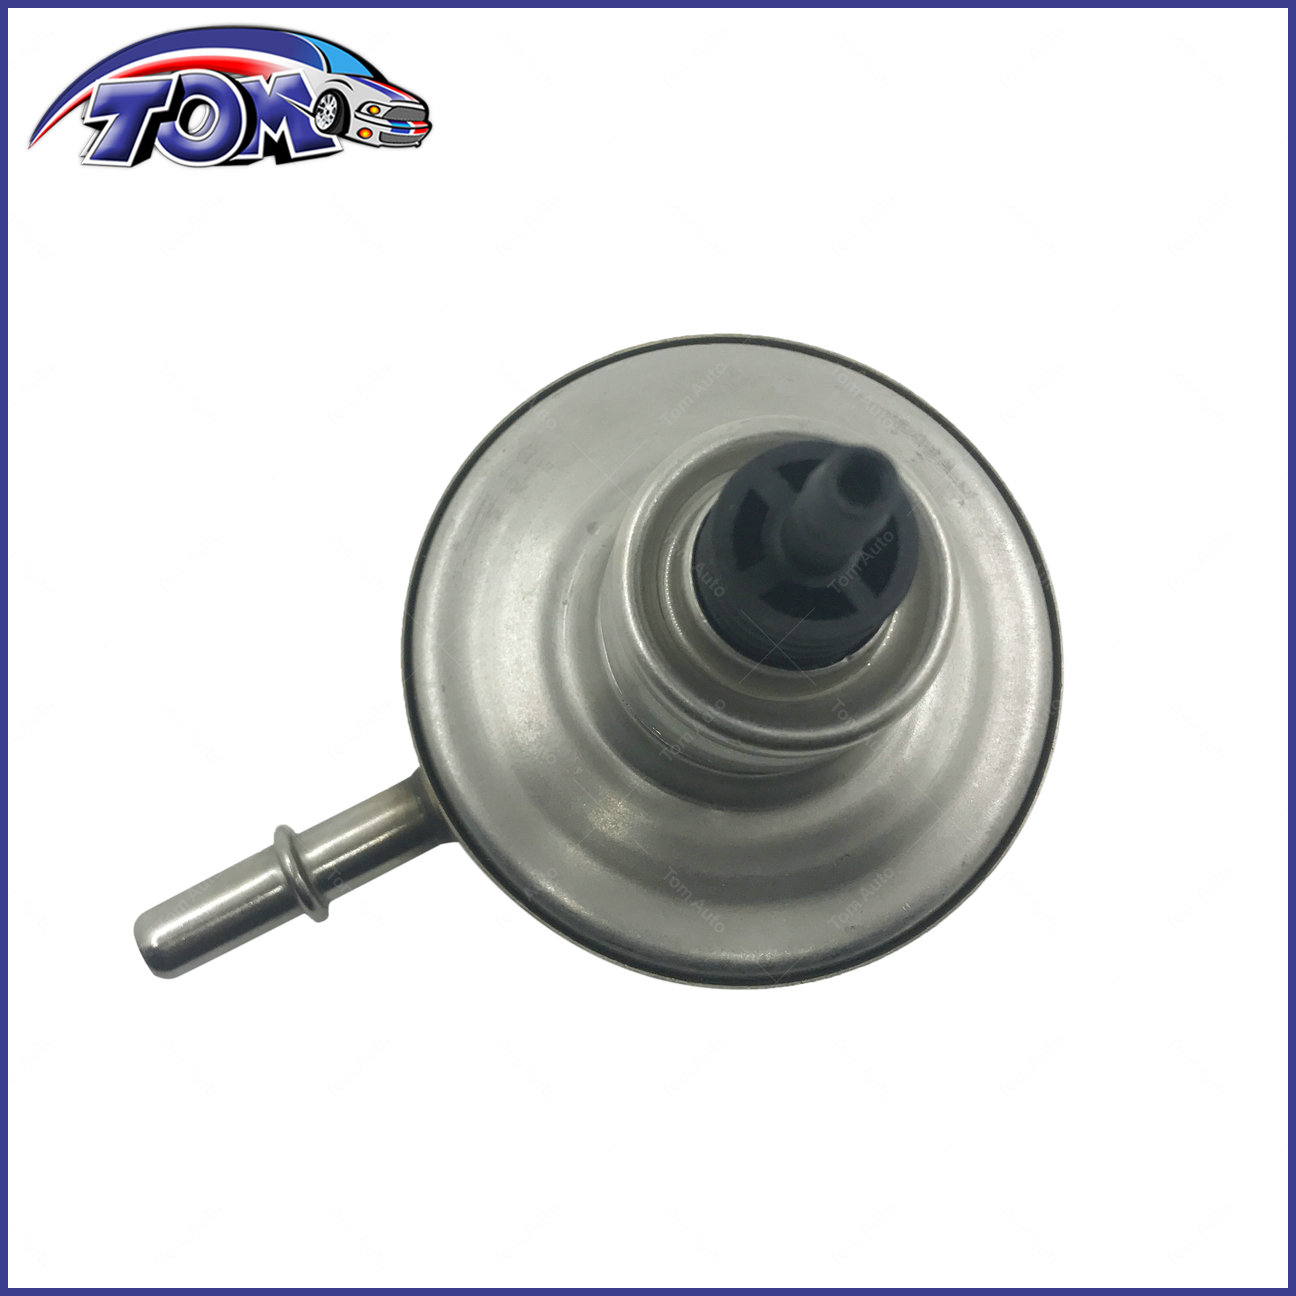 1998 2003 Dodge Durango Fuel Pressure Regulator Filter 2011 Always Free Shipping With Your Tom Auto Parts Orders